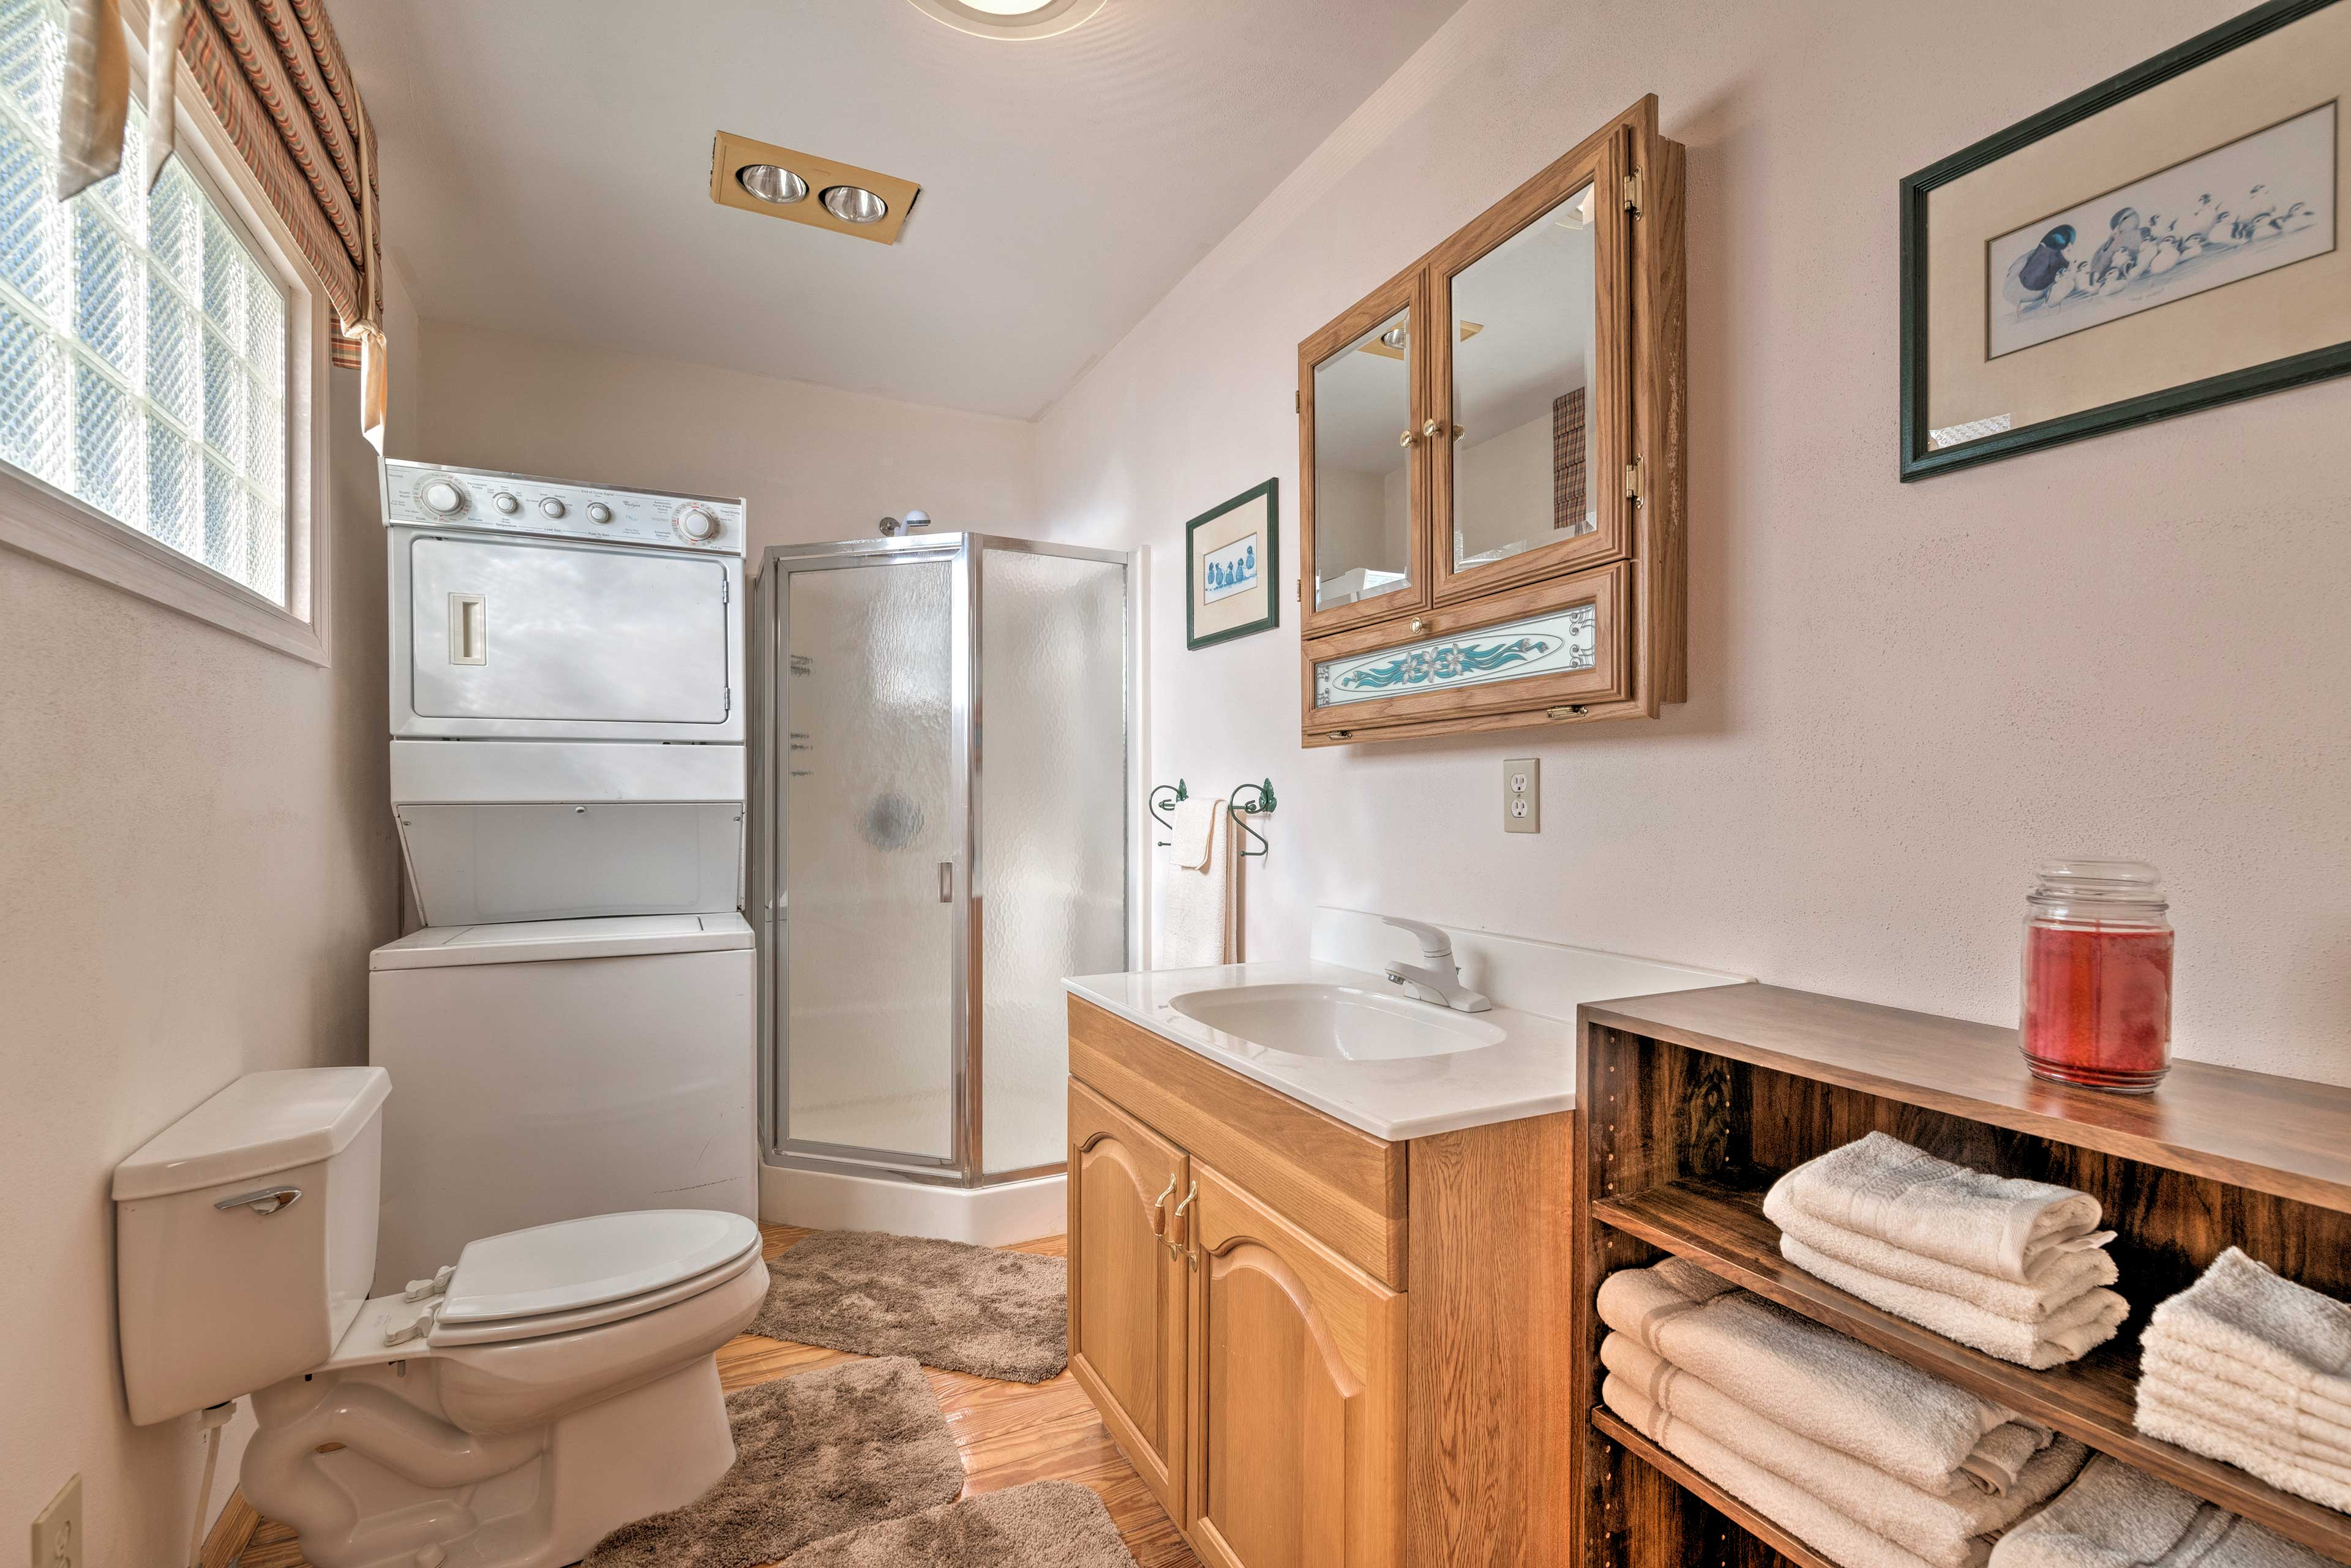 Take a shower in the bathroom and use the provided towels.